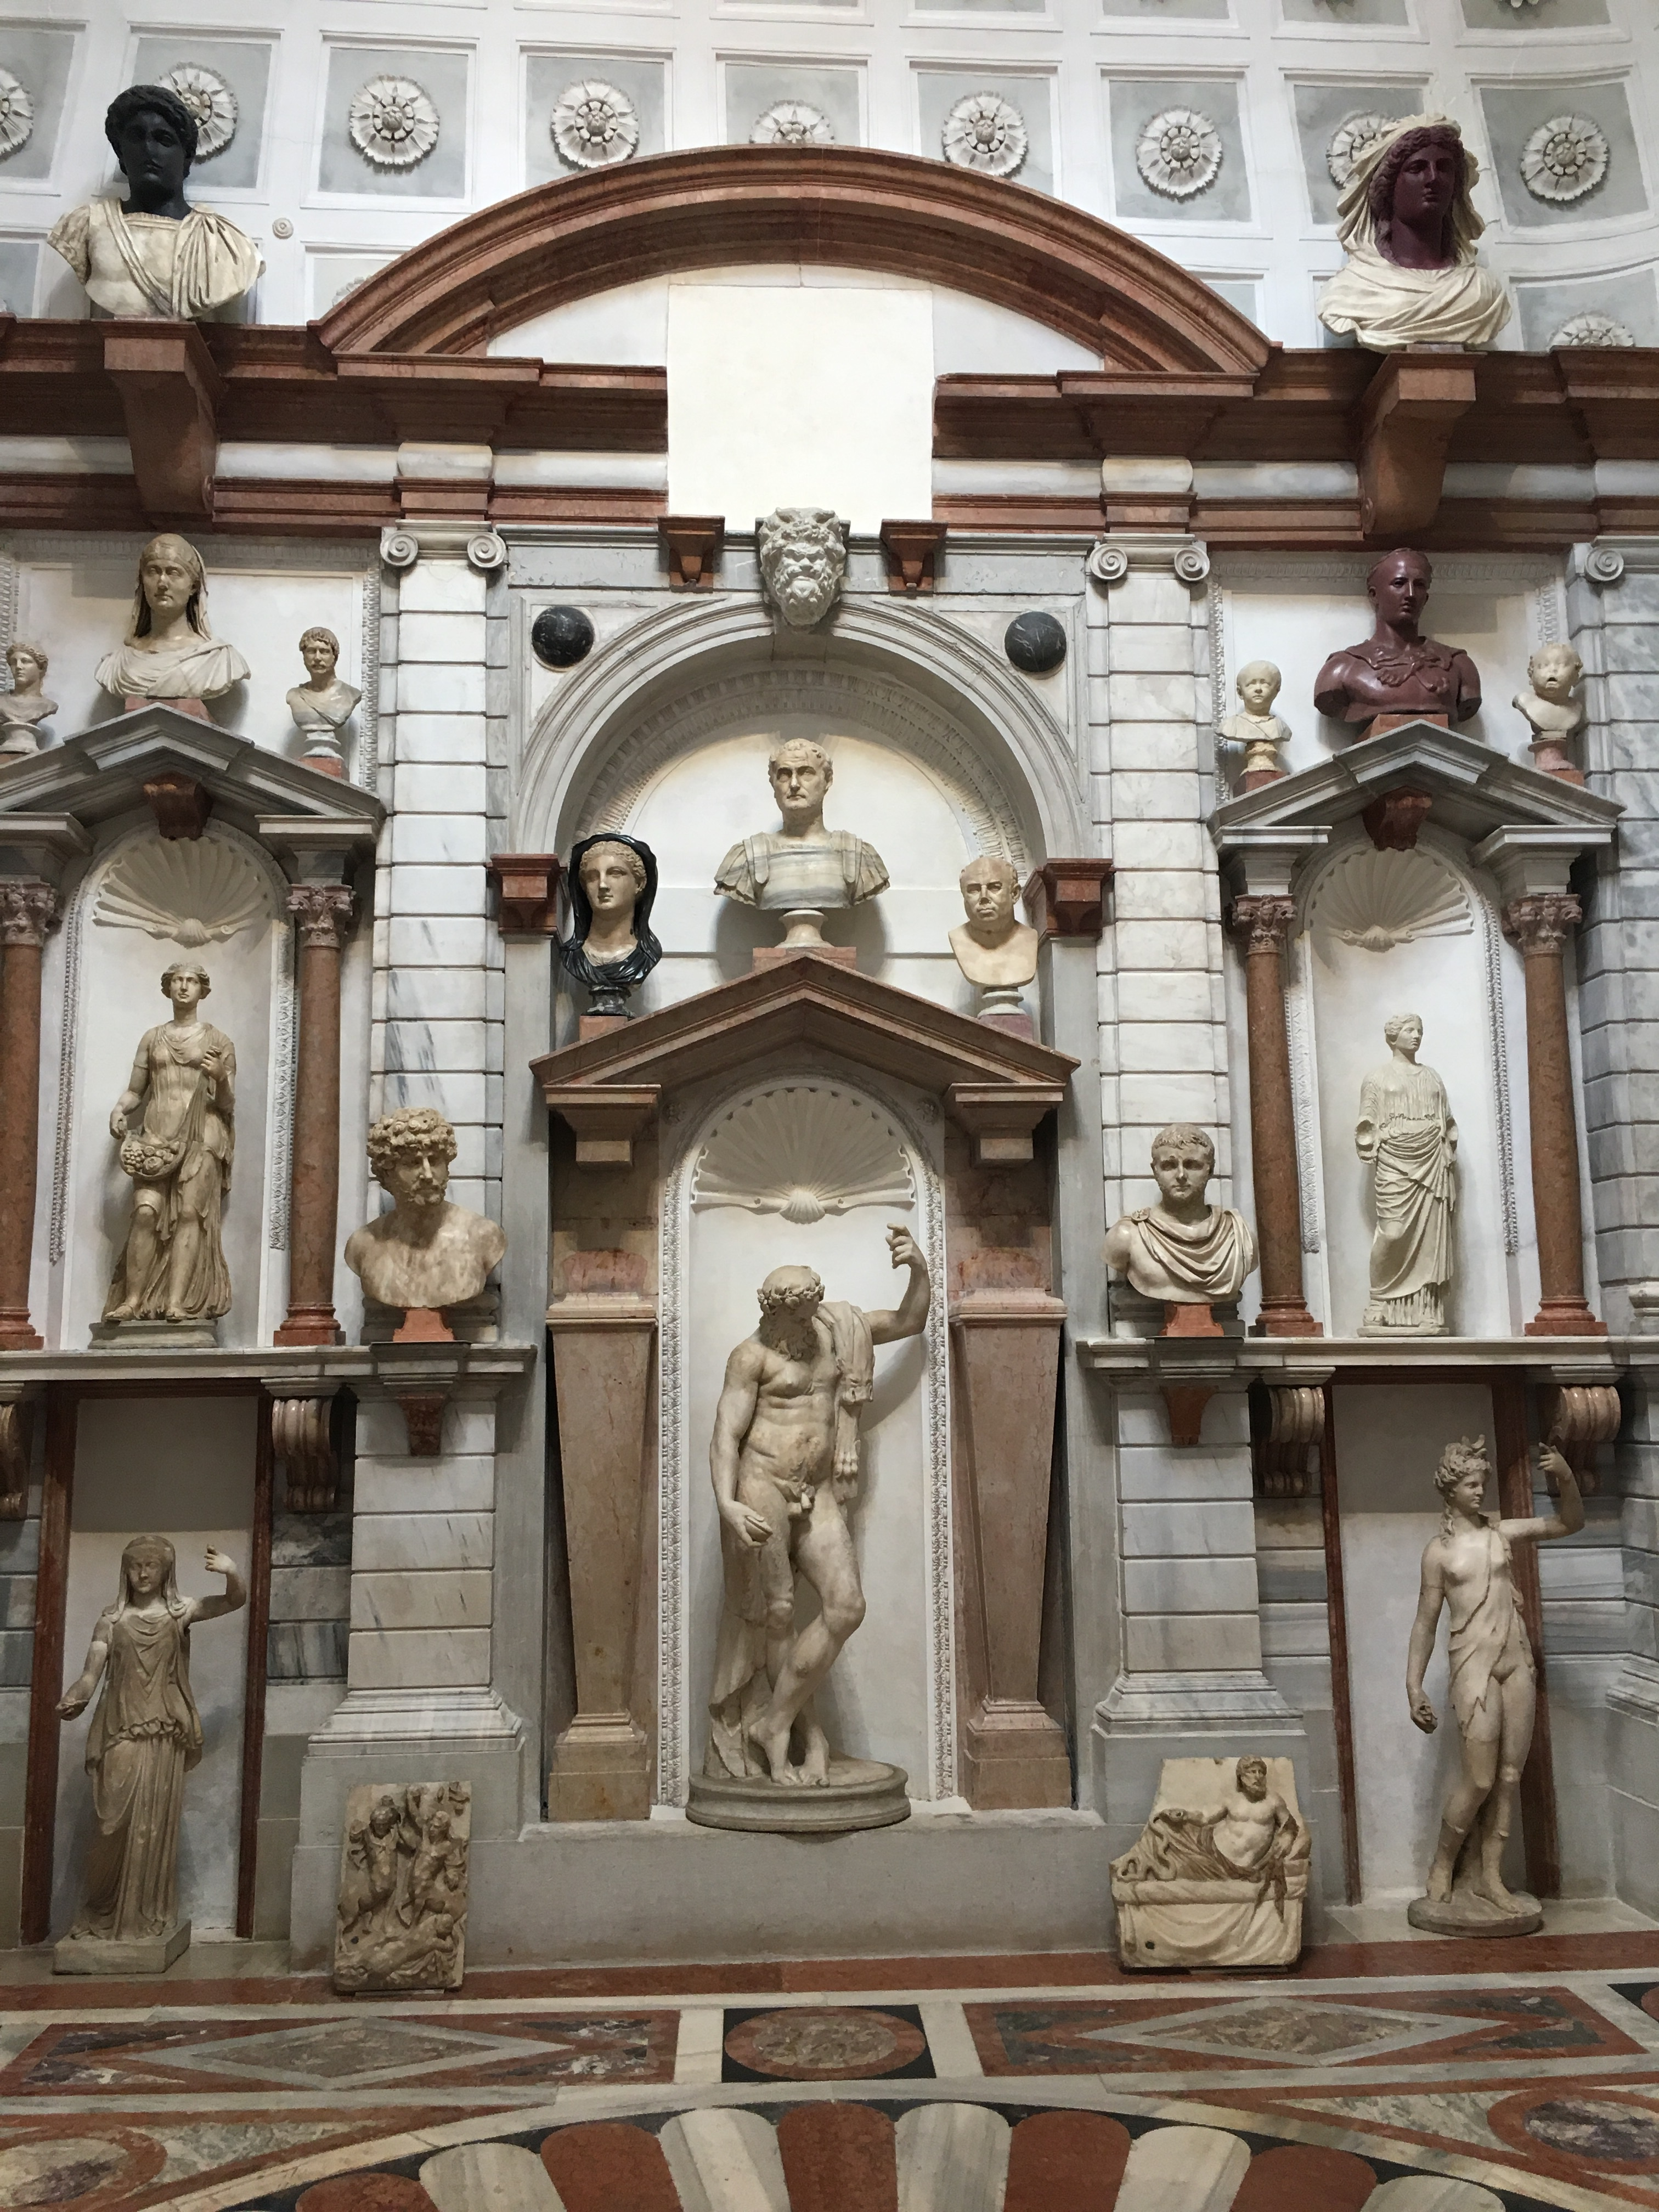 Palazzo Grimani - fabulous reconstruction of 1590s sculpture gallery, within the palace, in the original rotunda designed to display Giovanni Grimani's treasures.